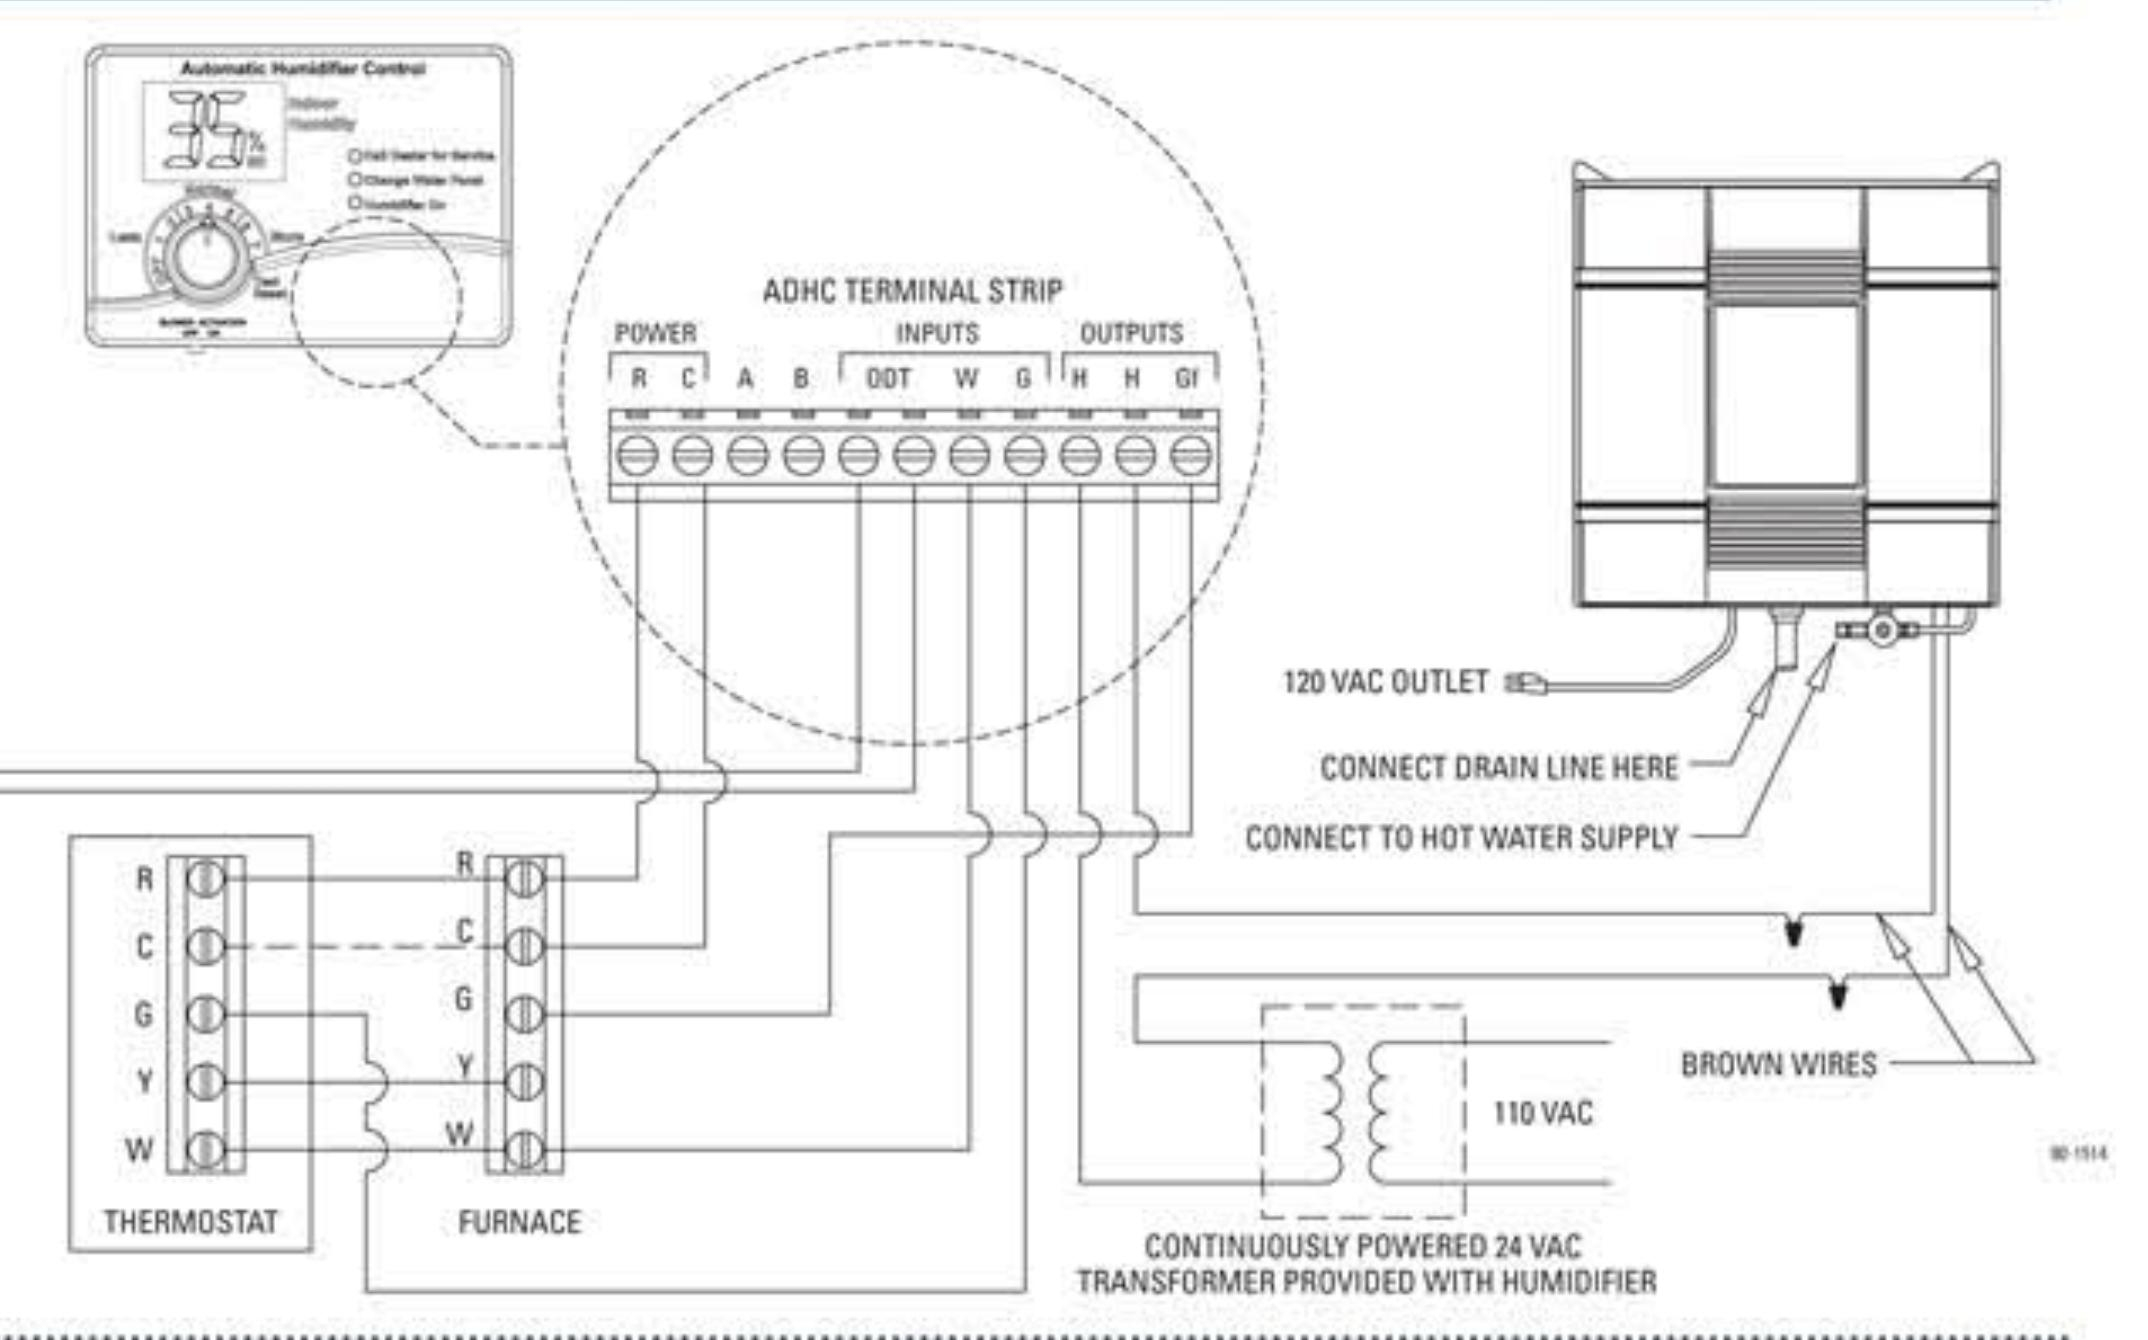 Humidifier Aprilaire 600 Wiring Diagram | Wiring Diagram - Aprilaire 600 Wiring Diagram